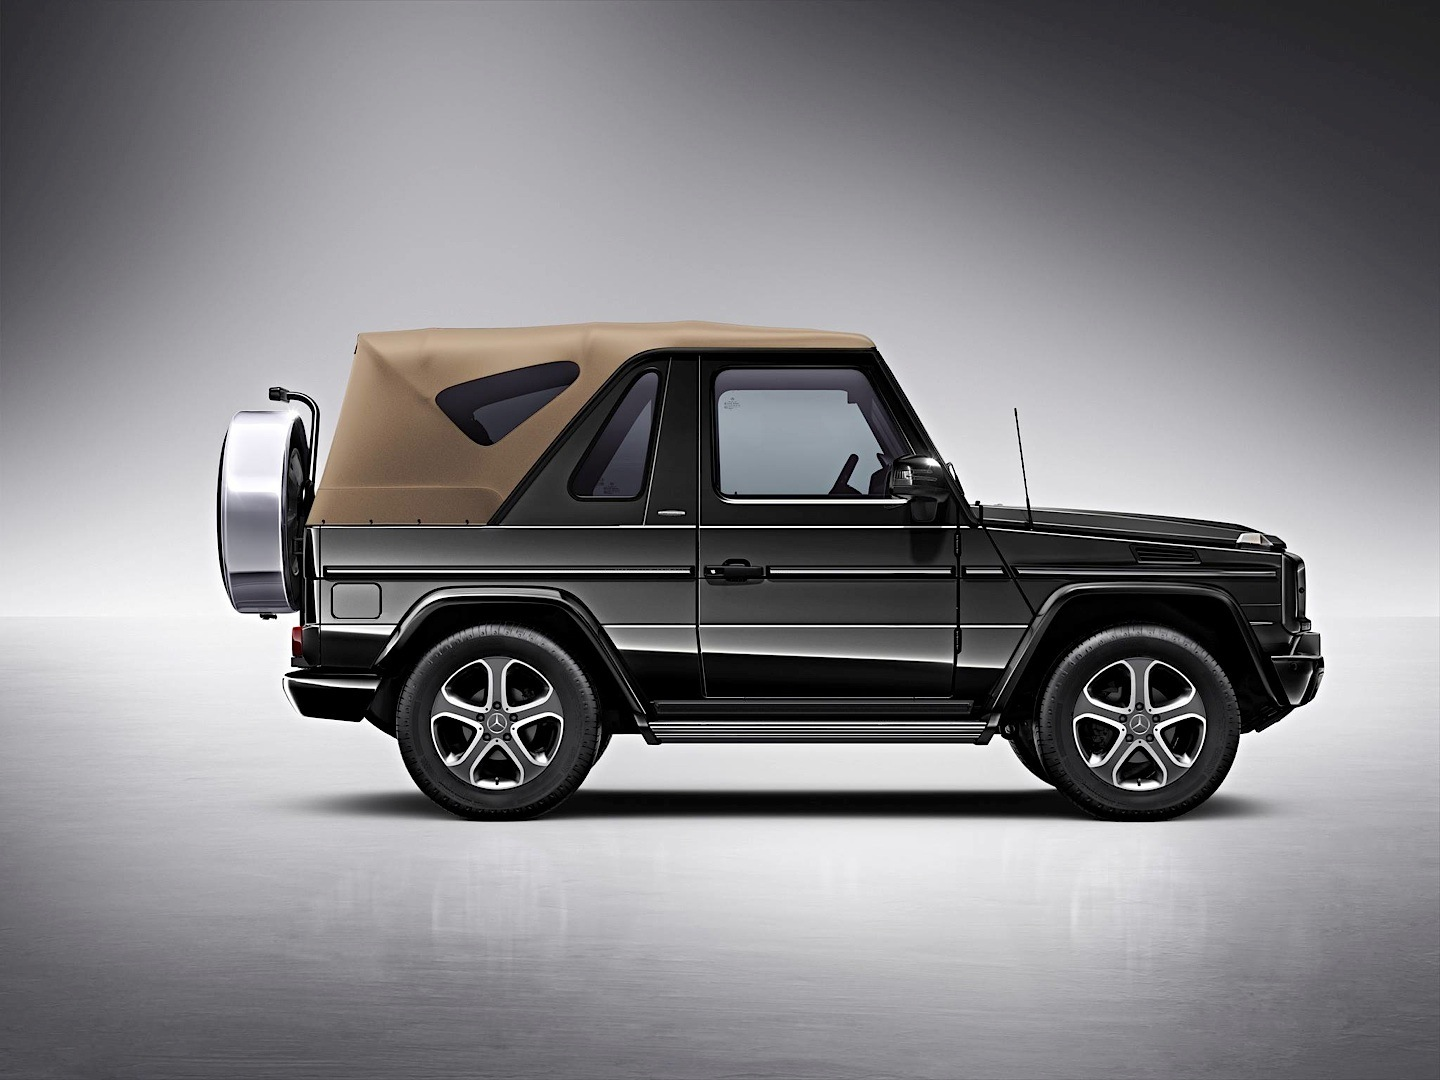 Say goodbye to the g class cabriolet model autoevolution for Mercedes benz g cabriolet